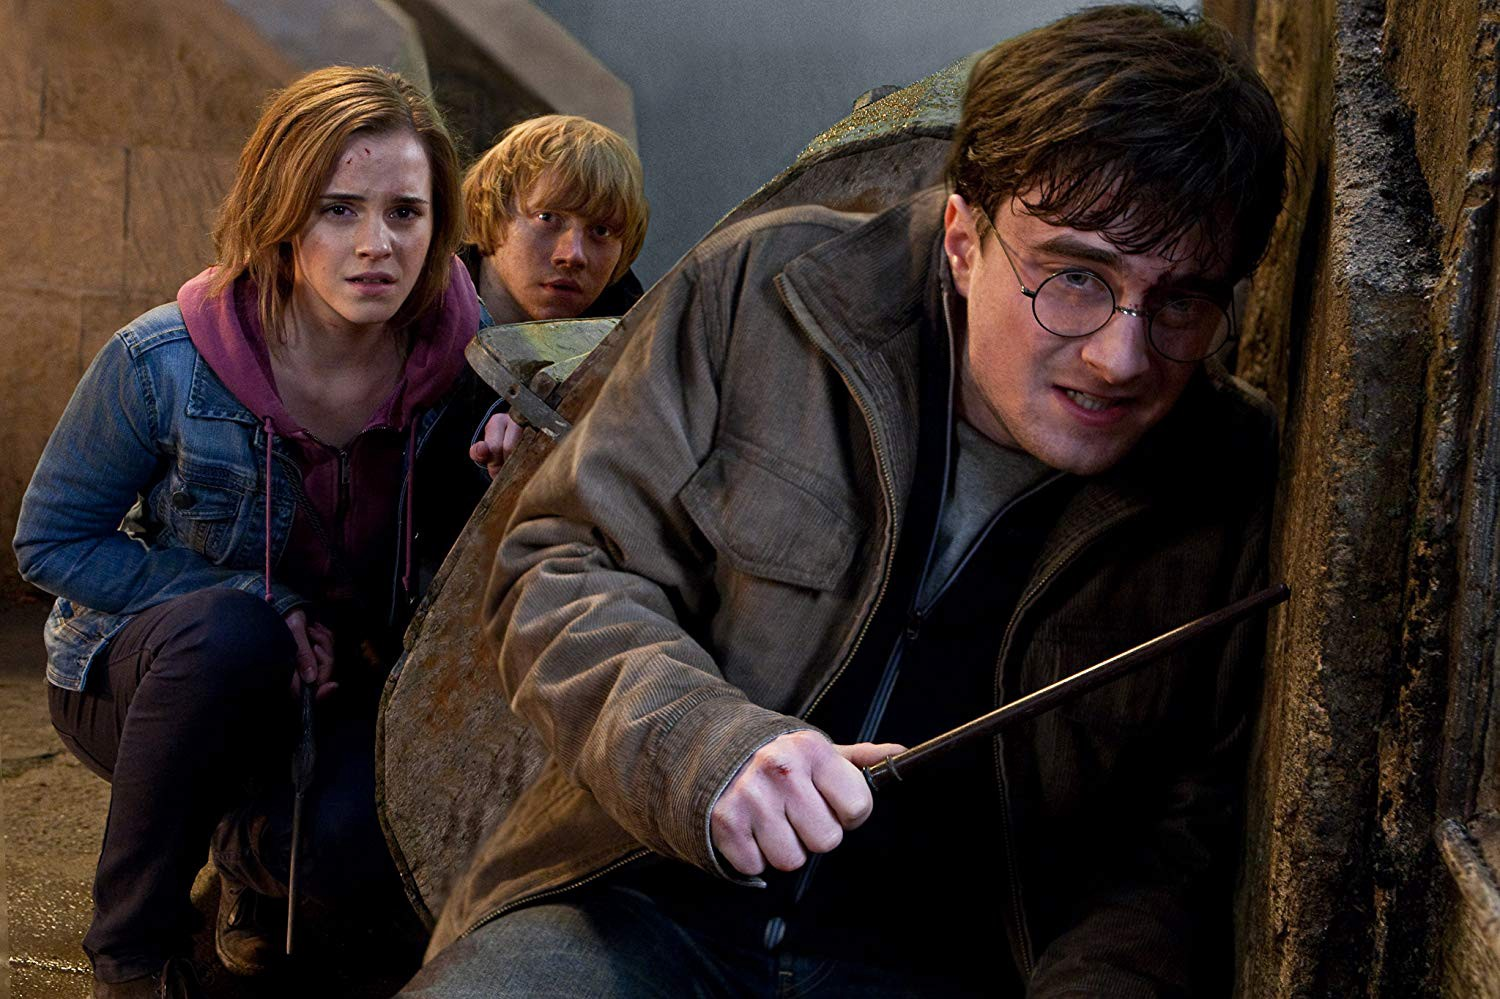 Movie Harry Potter And The Deathly Hallows Part 2 2011 Full Download Free By Zona Movies Medium